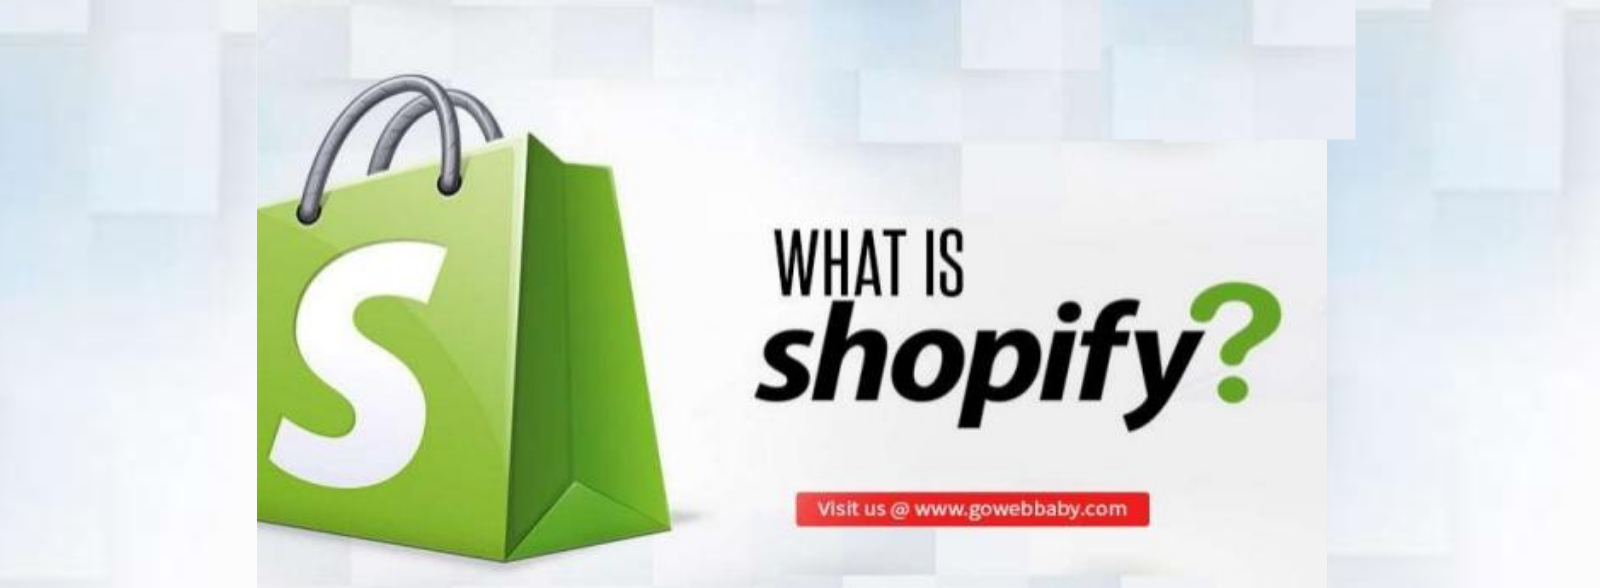 C:\Users\MADHU\Downloads\vs\what is shopify.png